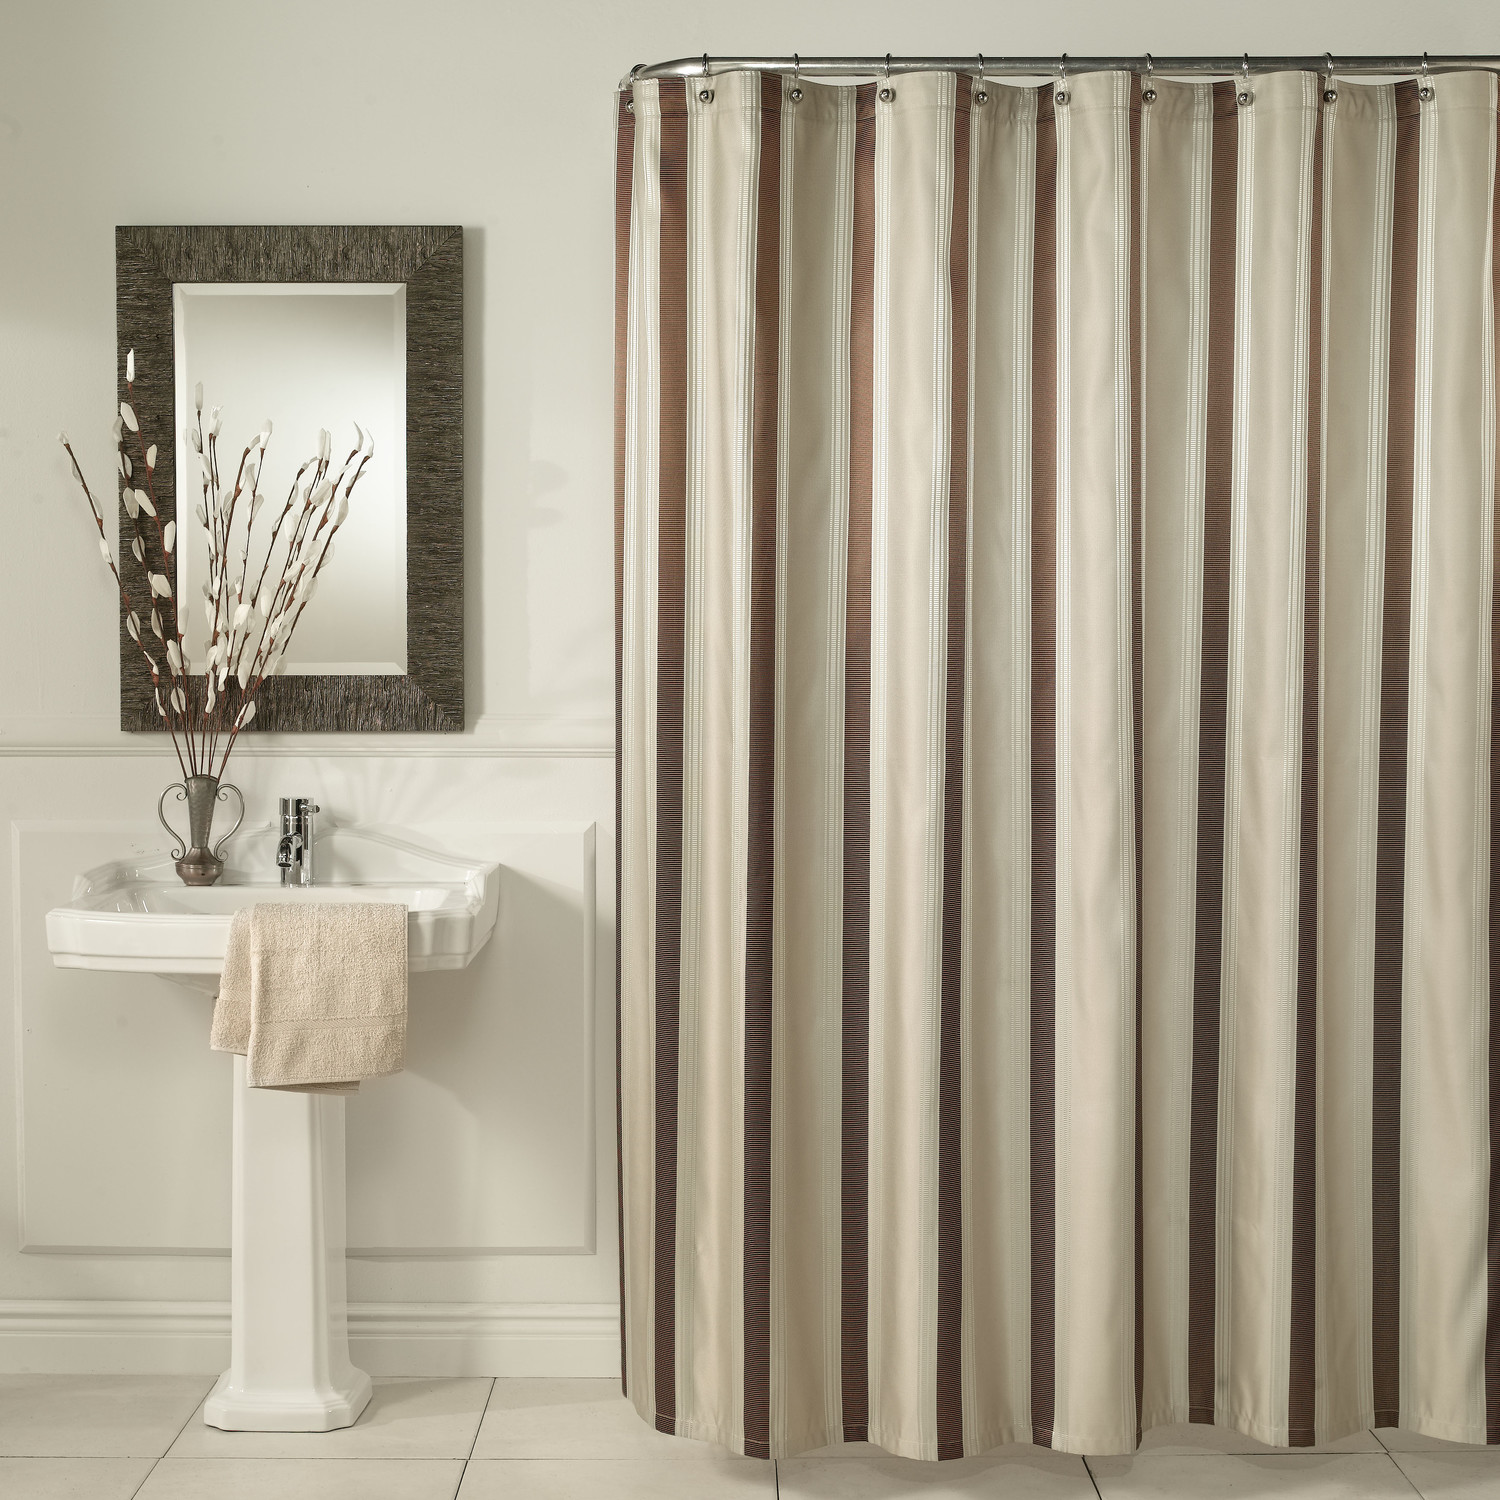 Bathroom Shower Curtain Bed Bath And Beyond Shower Curtains Brown Vertical Striped